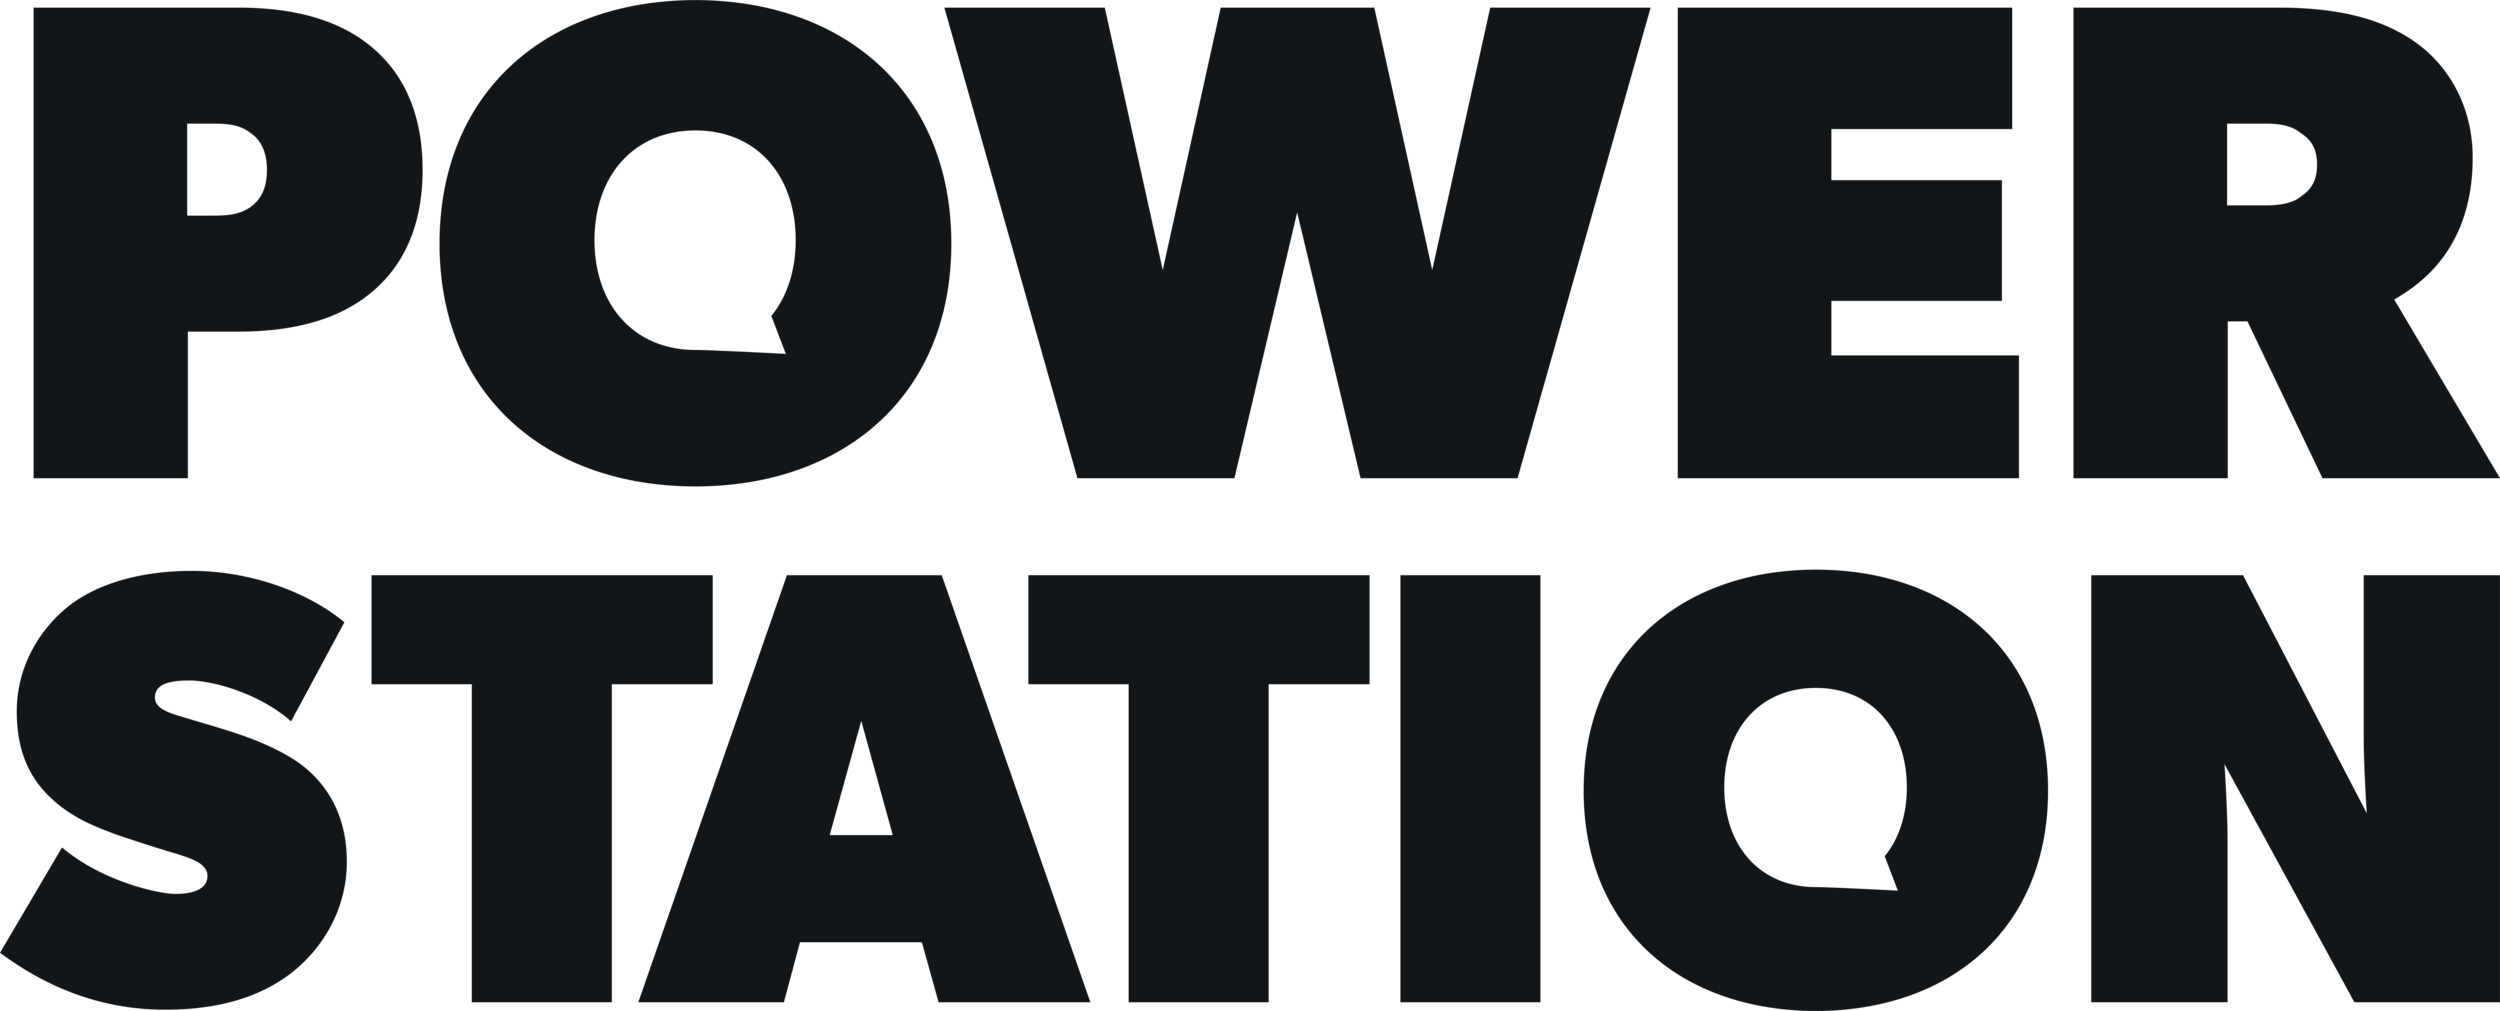 www.power-station.co